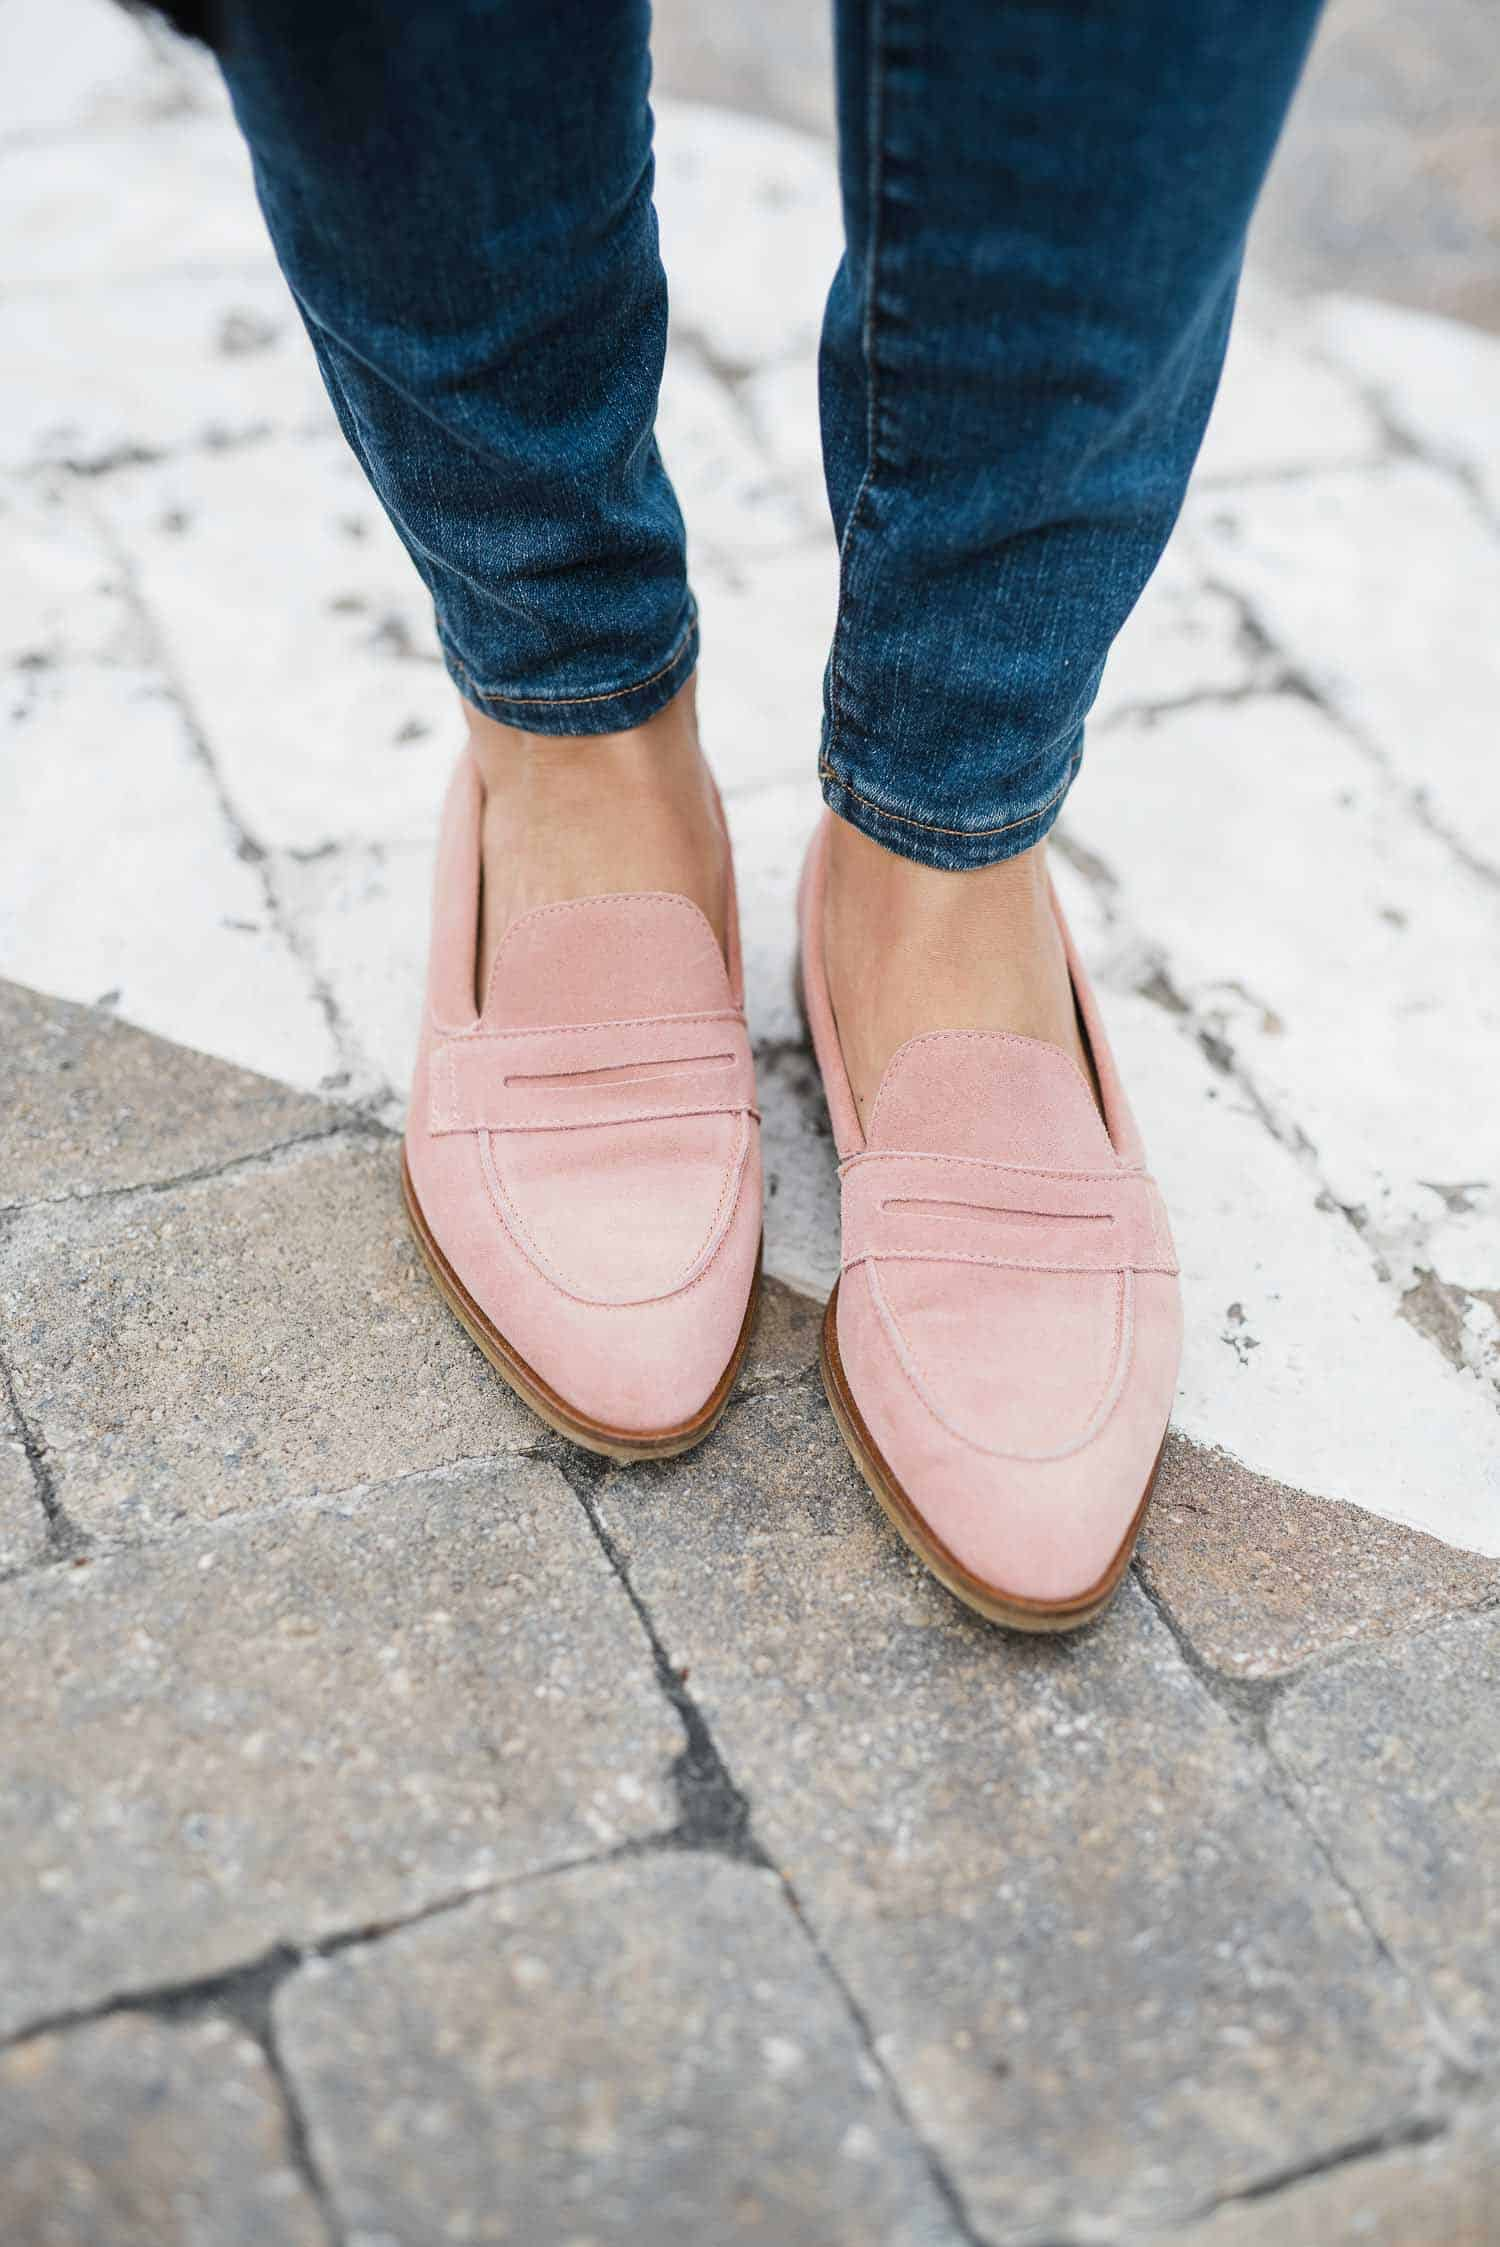 blush loafers, Everlane loafers for fall - My Style Vita